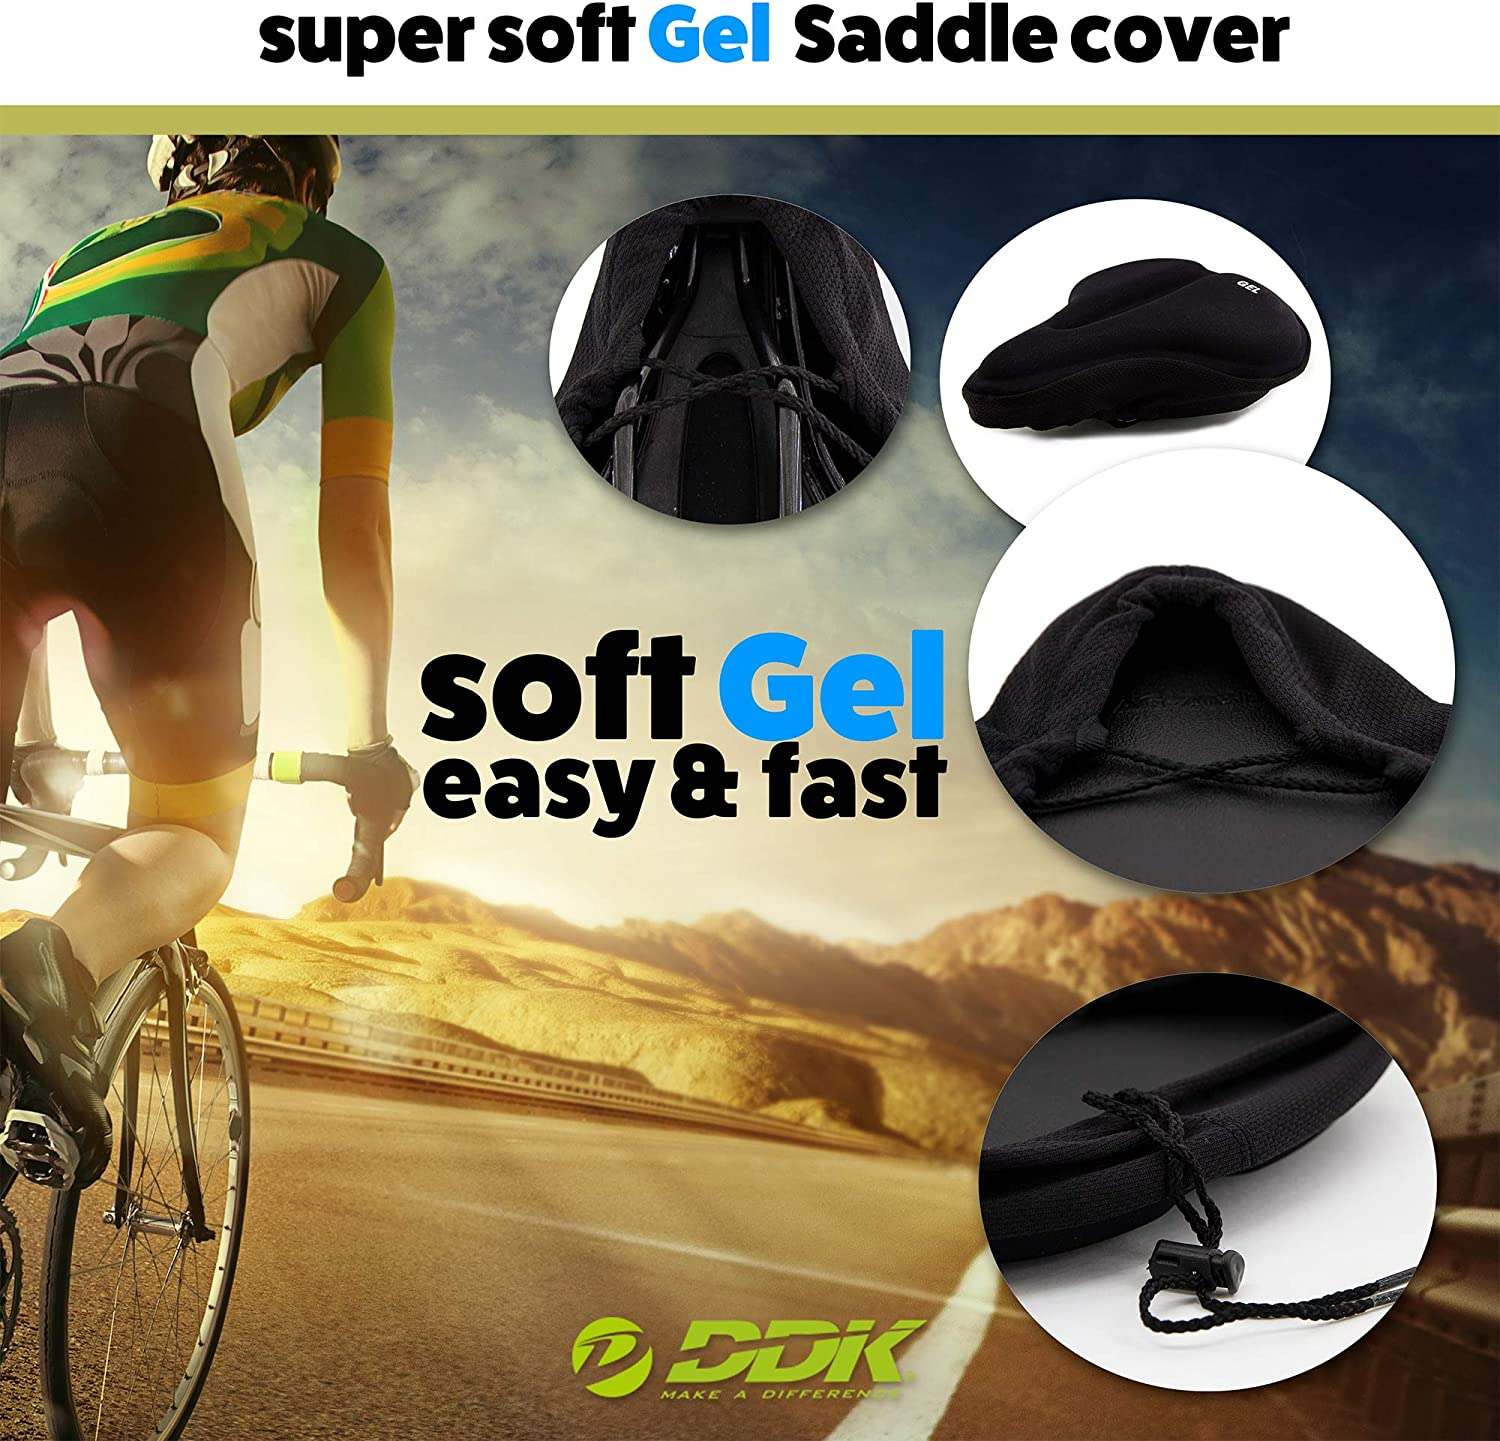 DDK Bicycle Saddle Extra Comfort Gel Cover Lycra Fabric